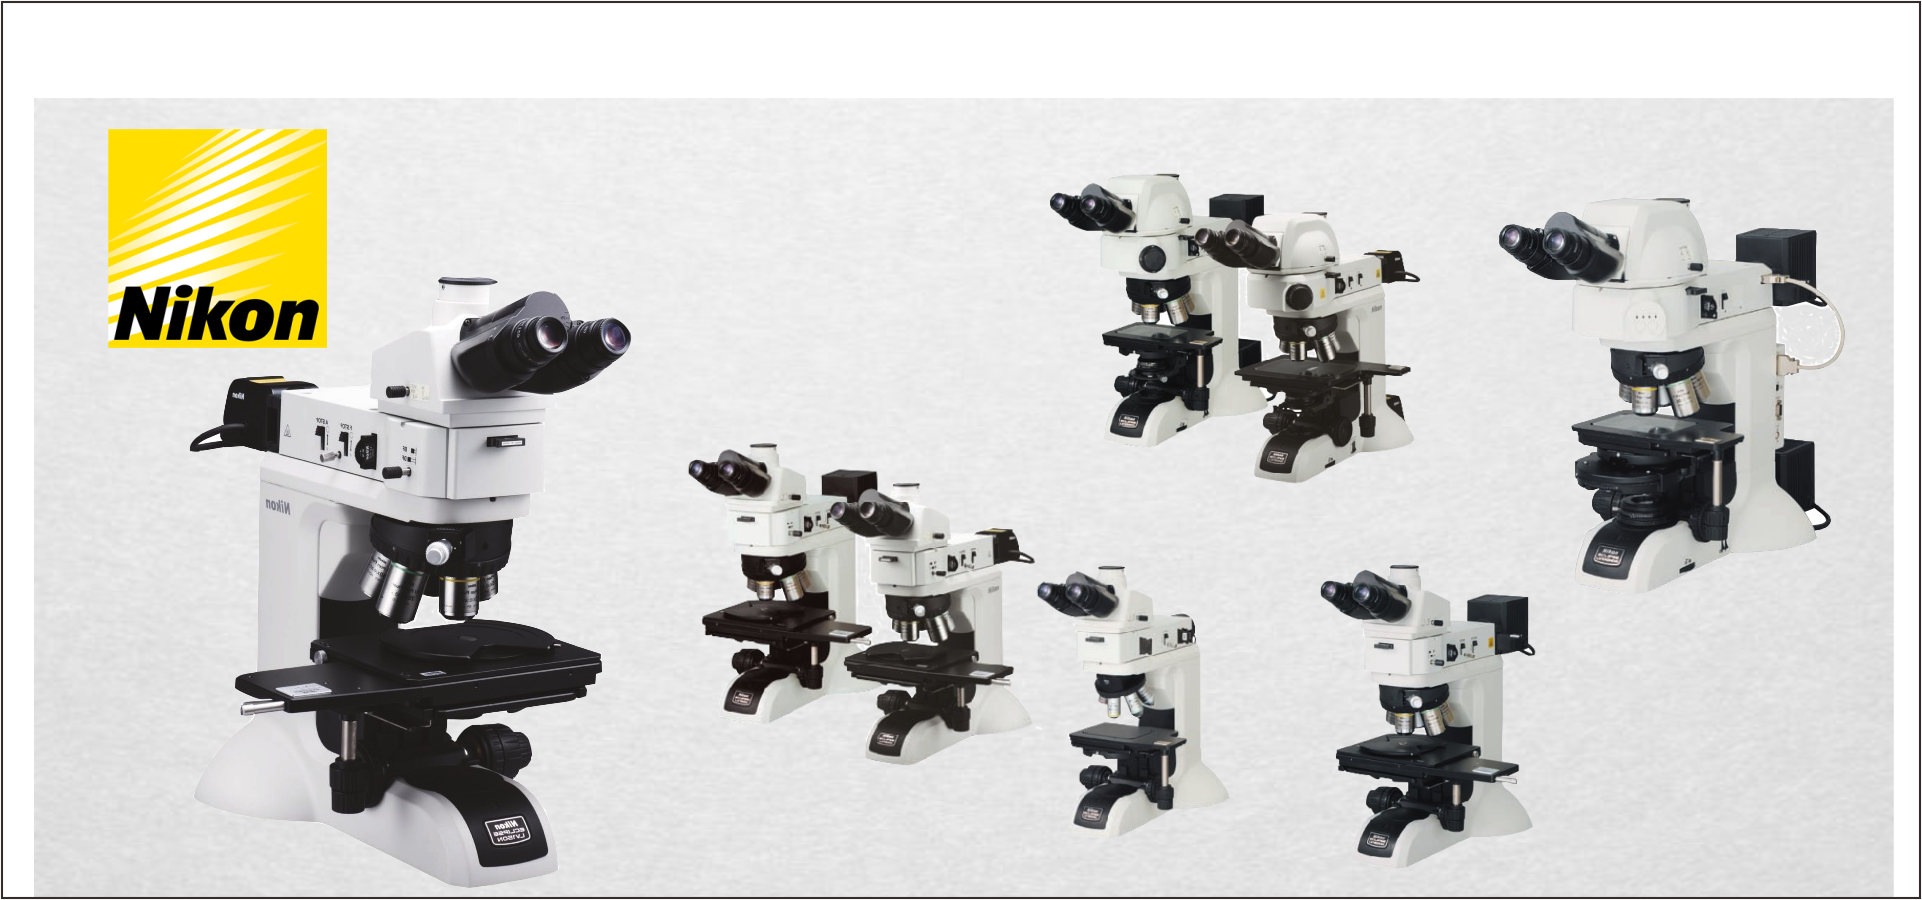 ECLIPSE LV-N | INDUSTRIAL MICROSCOPES